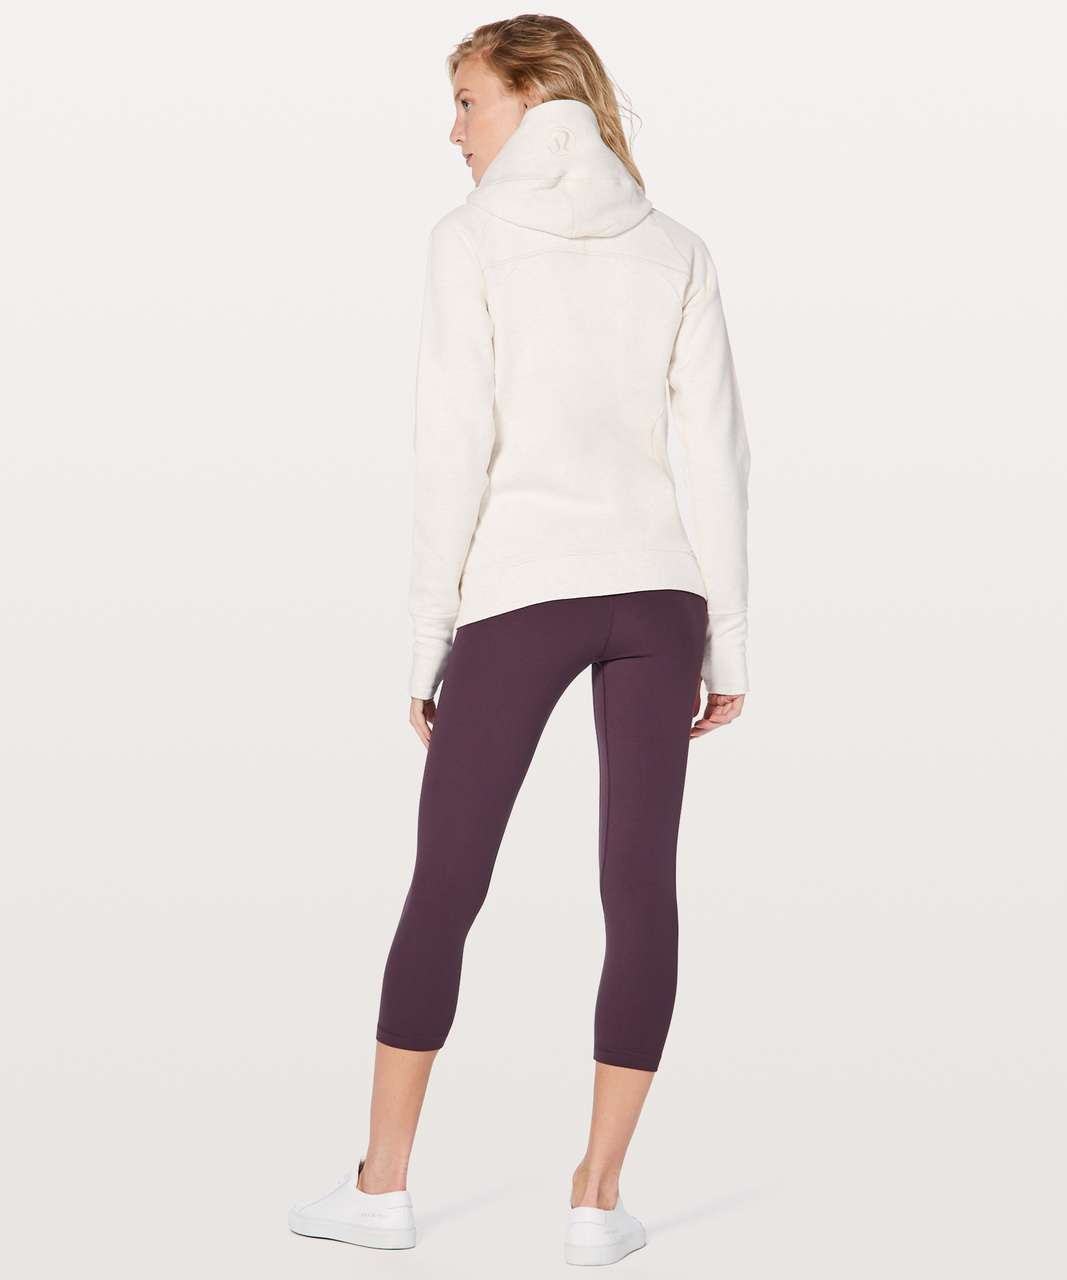 Lululemon Scuba Hoodie Classic Cotton Fleece - Heathered Angel White / Angel Wing